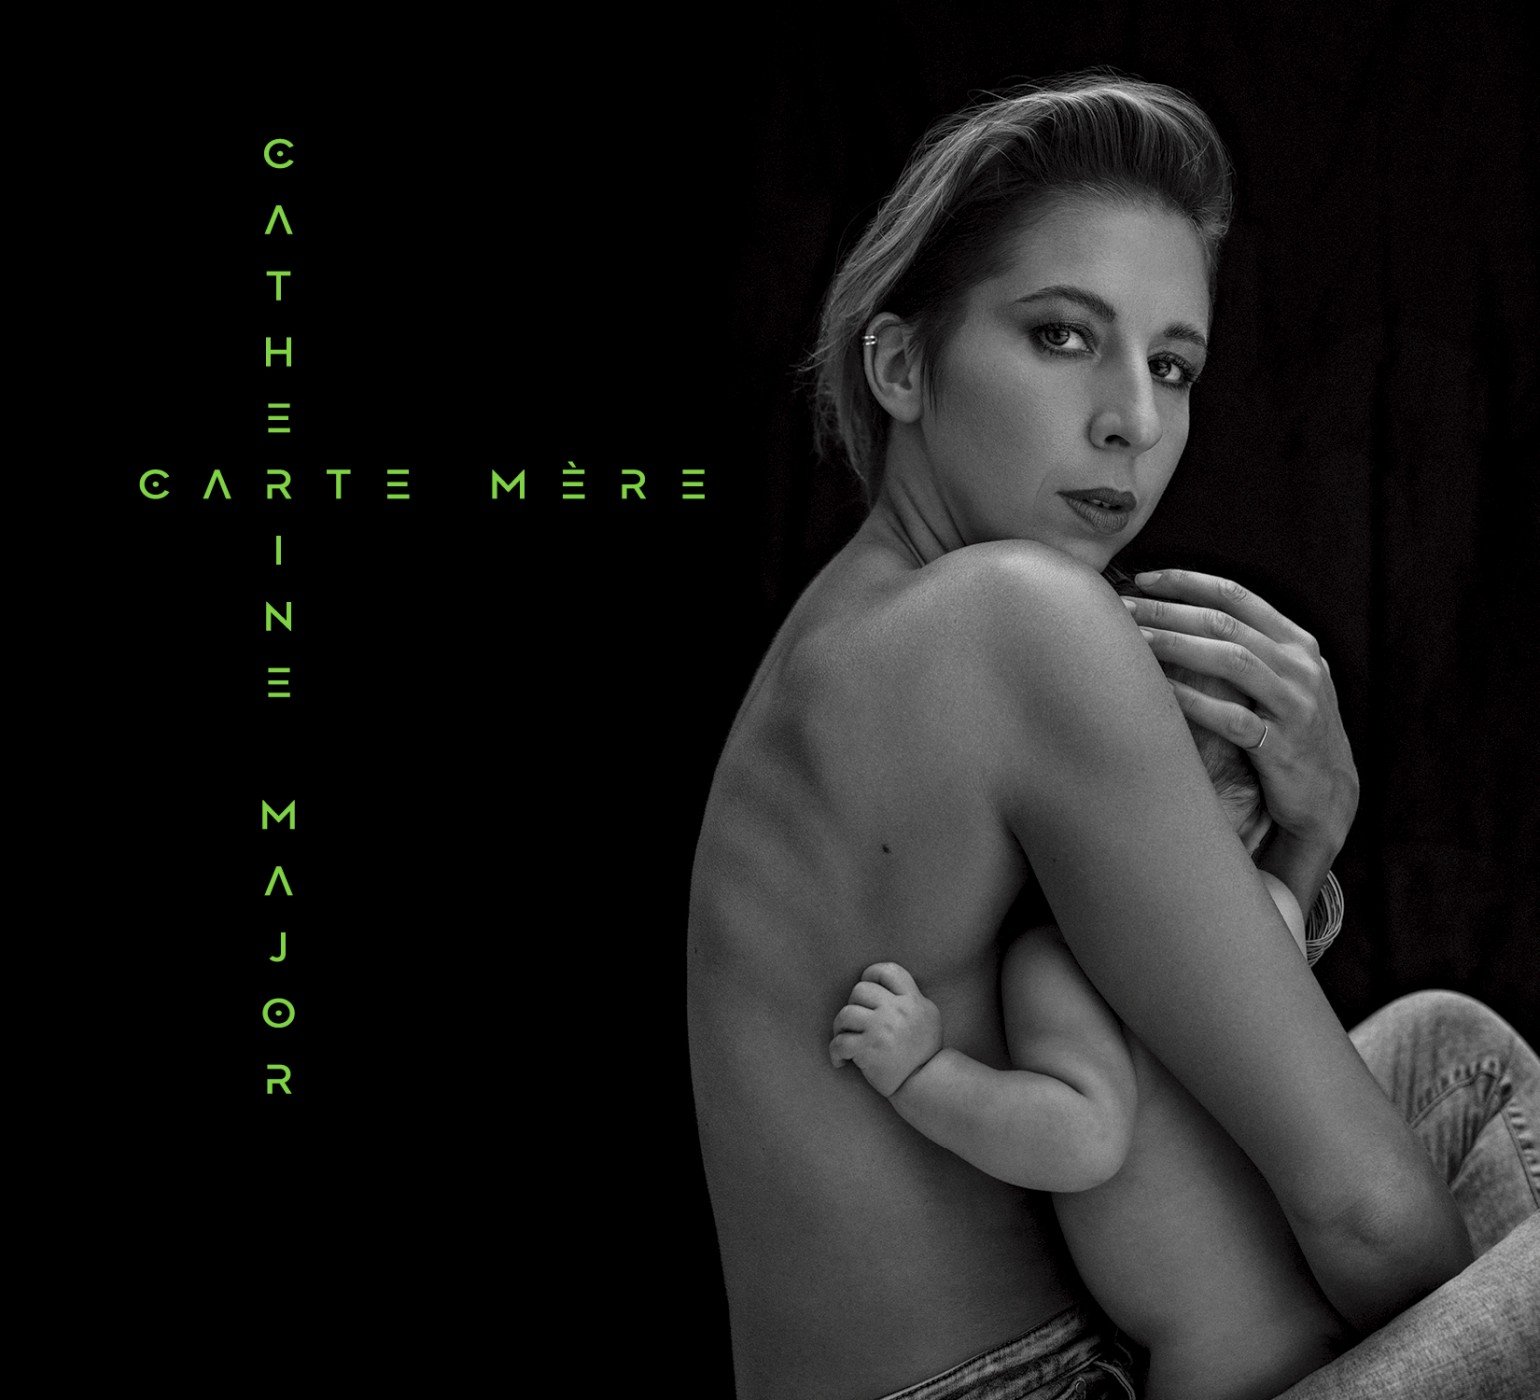 L'album Carte mère de Catherine Major en position #2 des 25 meilleurs albums de 2020 de Canadian Music Blog